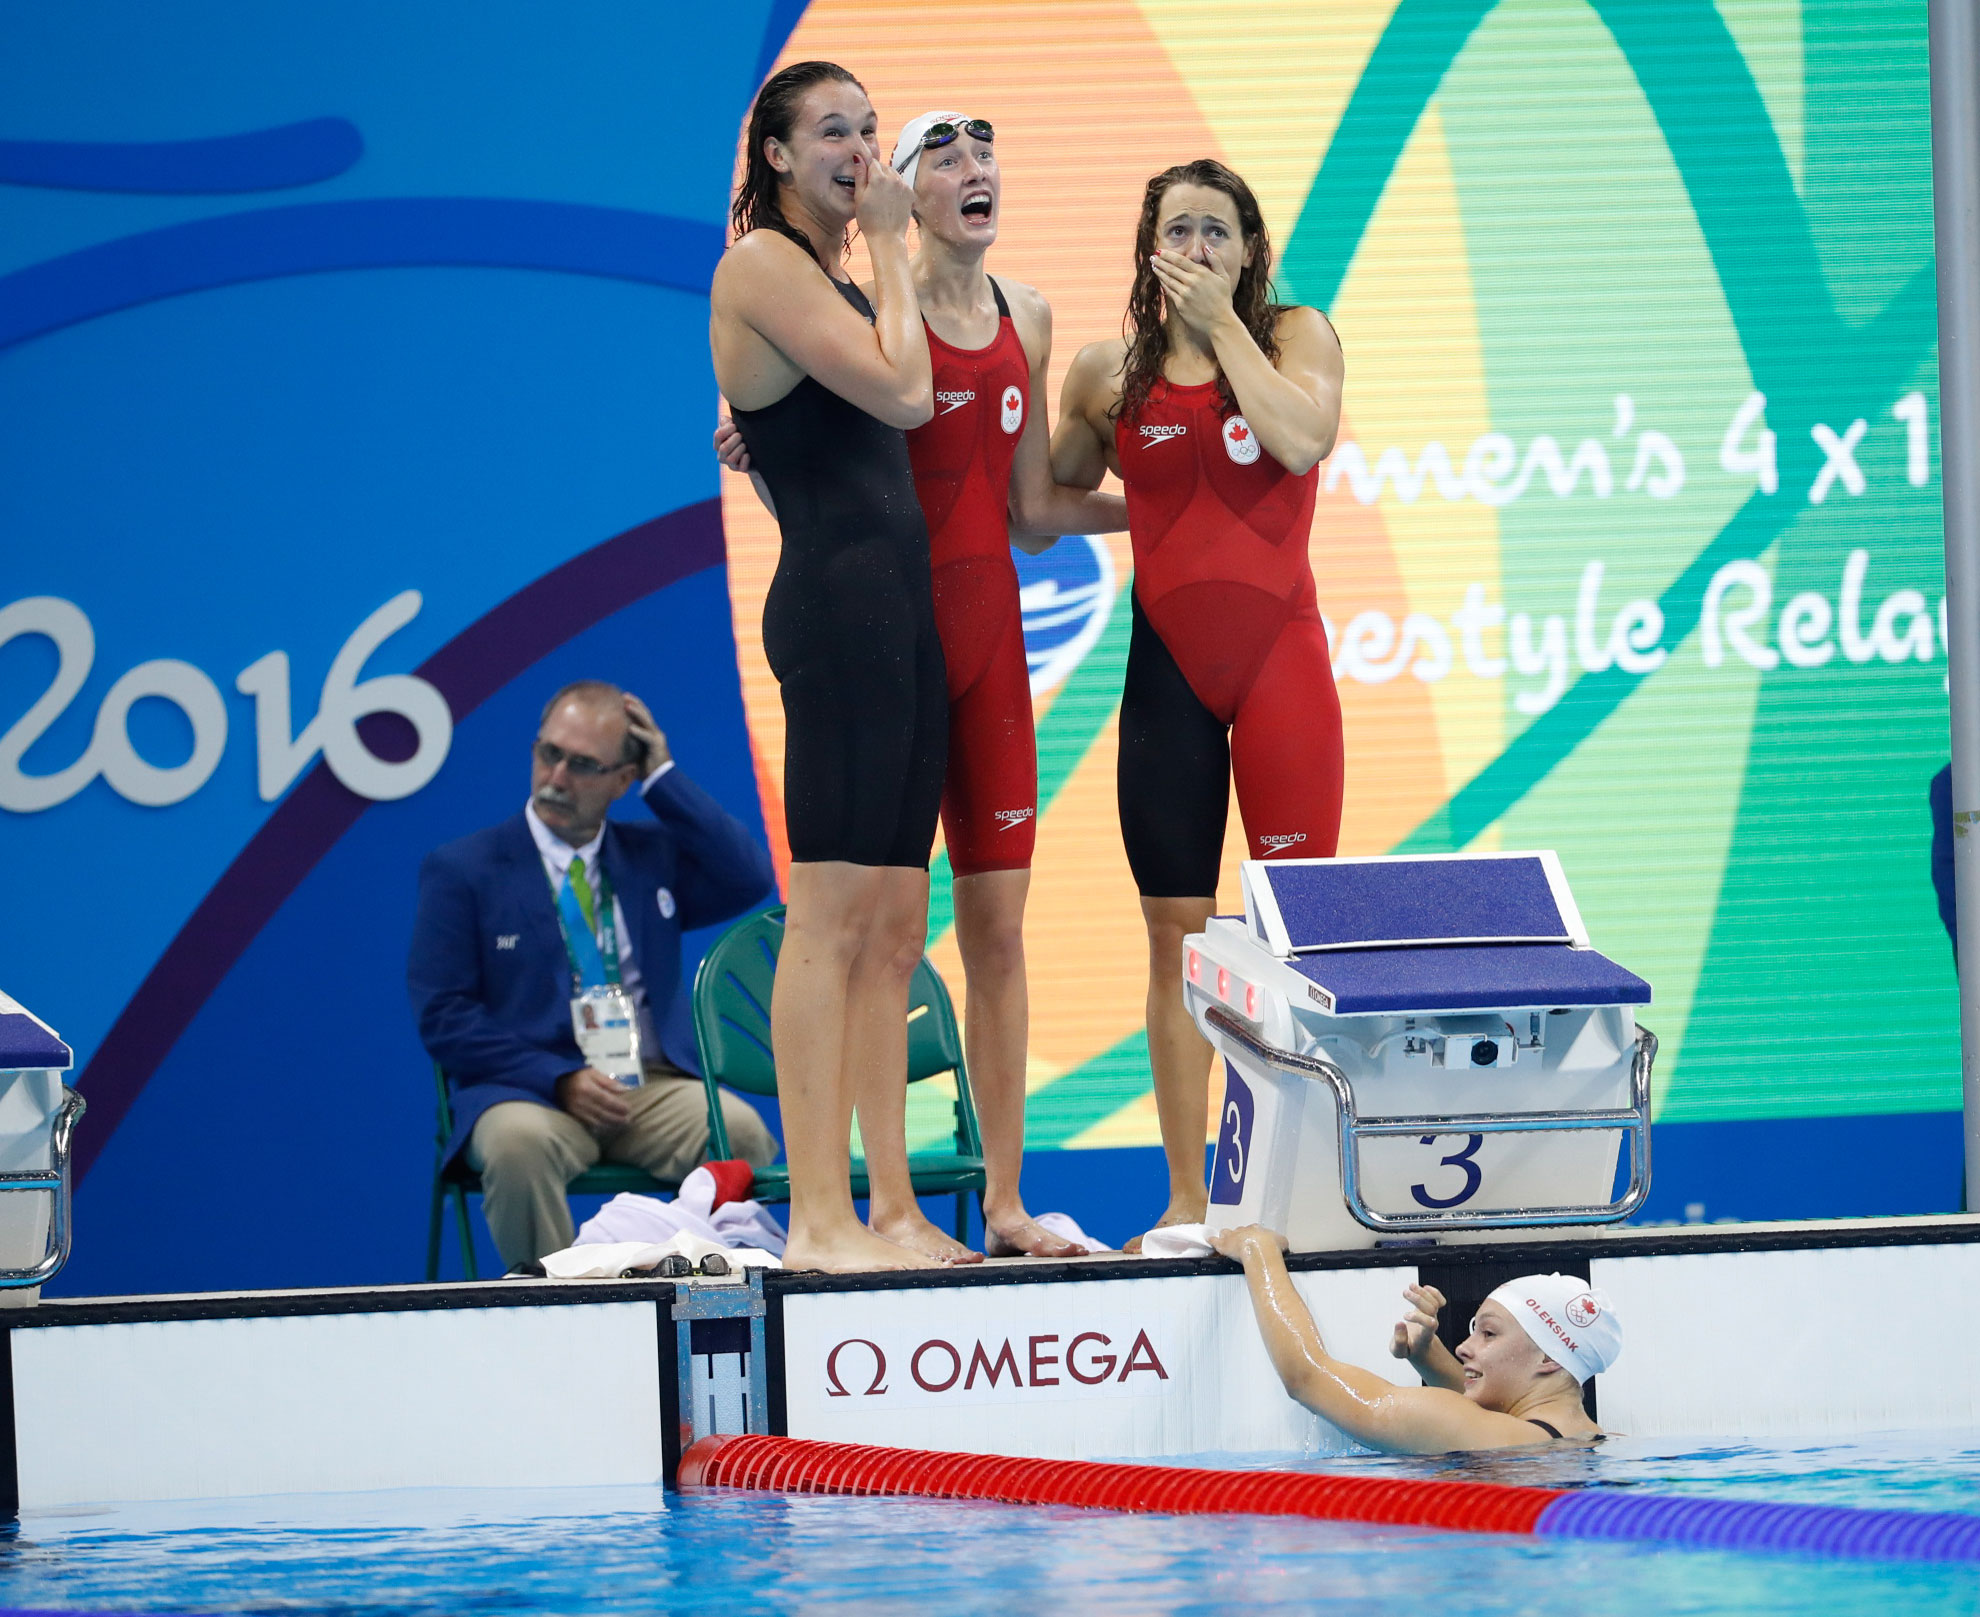 Rio 2016: 4x100m freestyle relay team realizes they've won an Olympic medal (Mark Blinch/COC).